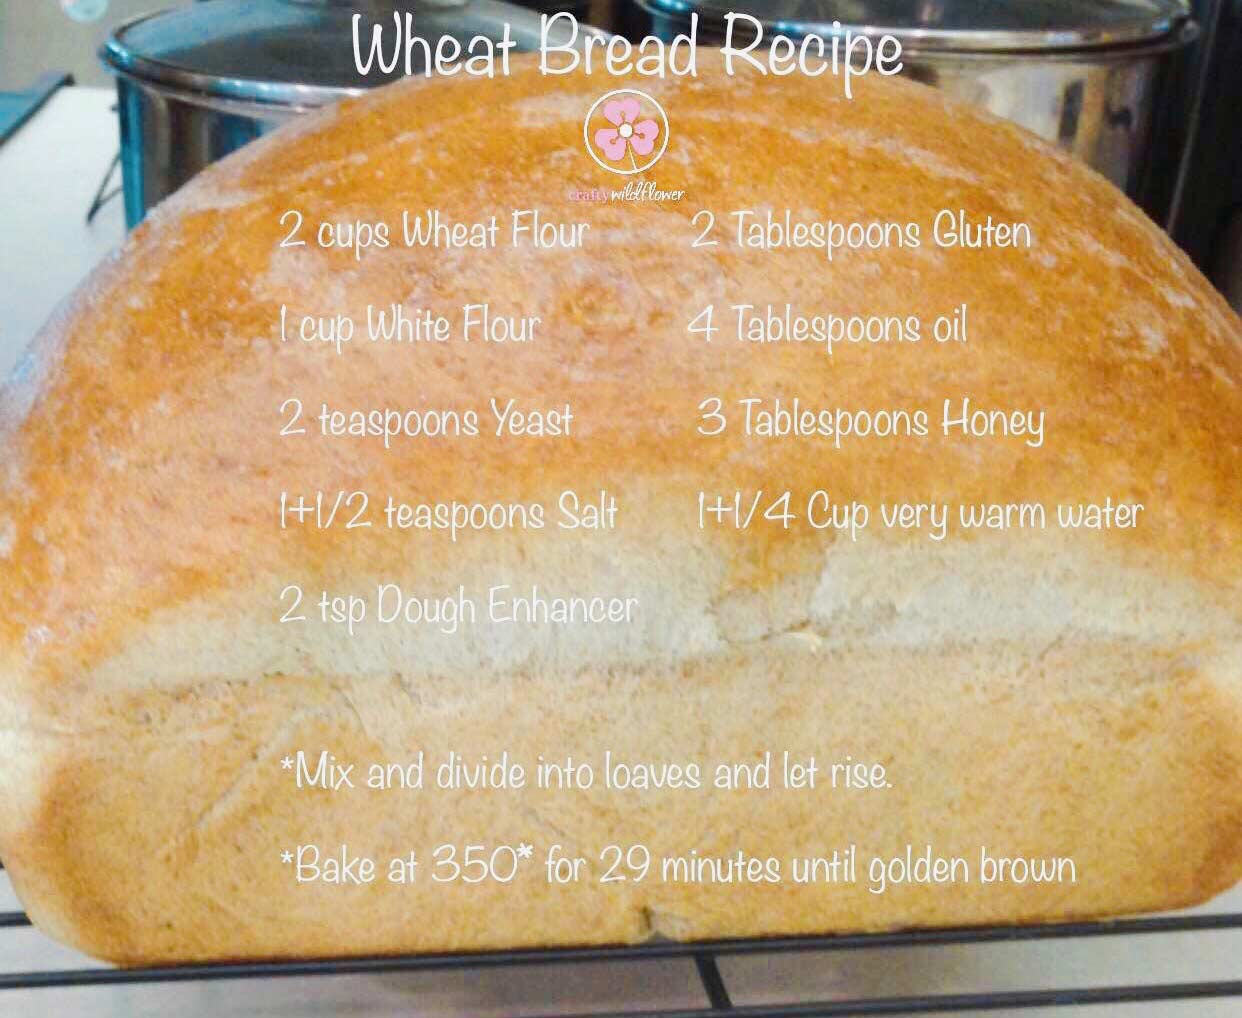 Delicious Wheat Bread Recipe - Wellness Wednesday